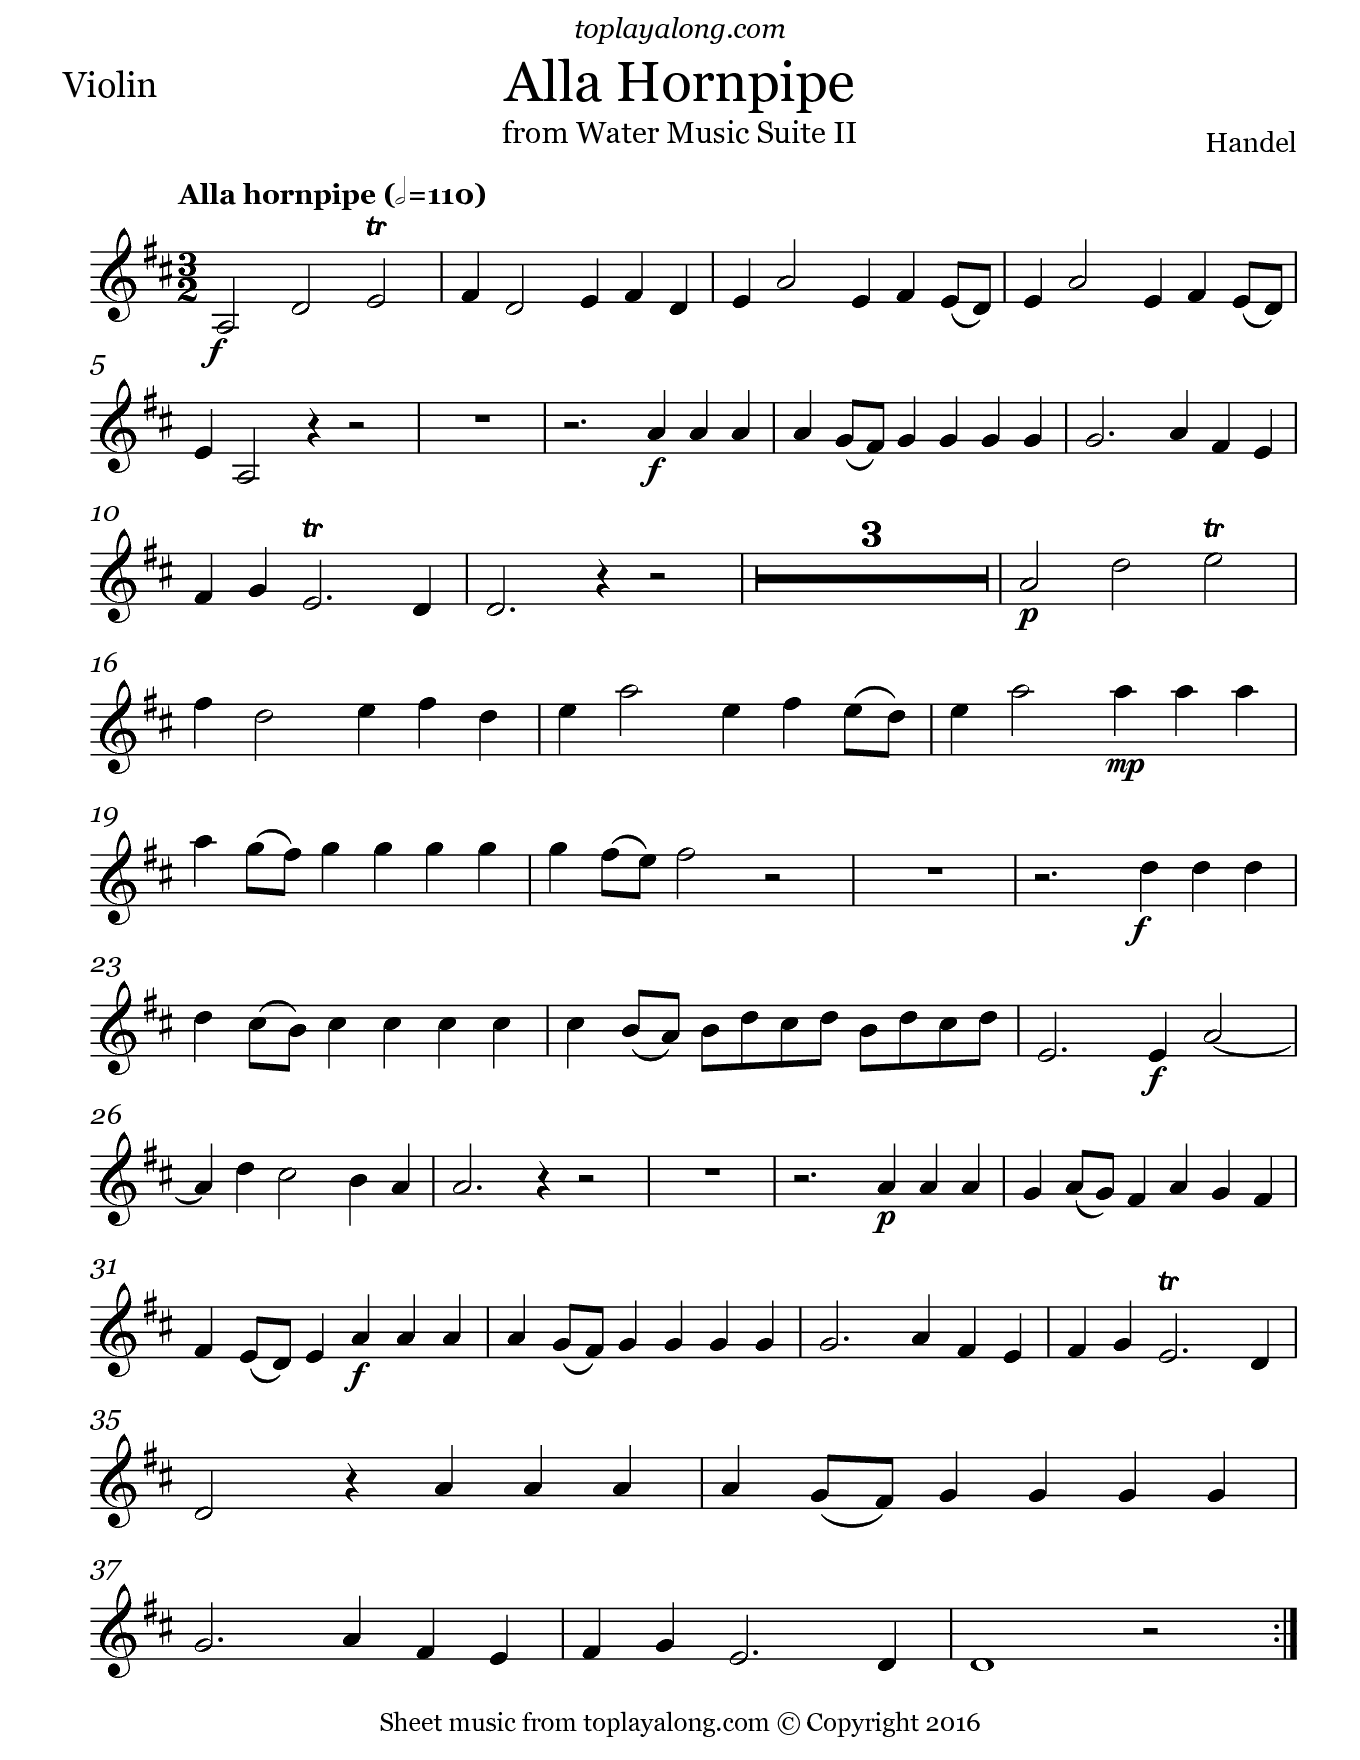 Alla Hornpipe from Water Music Suite II by Handel. Sheet music for Violin, page 1.